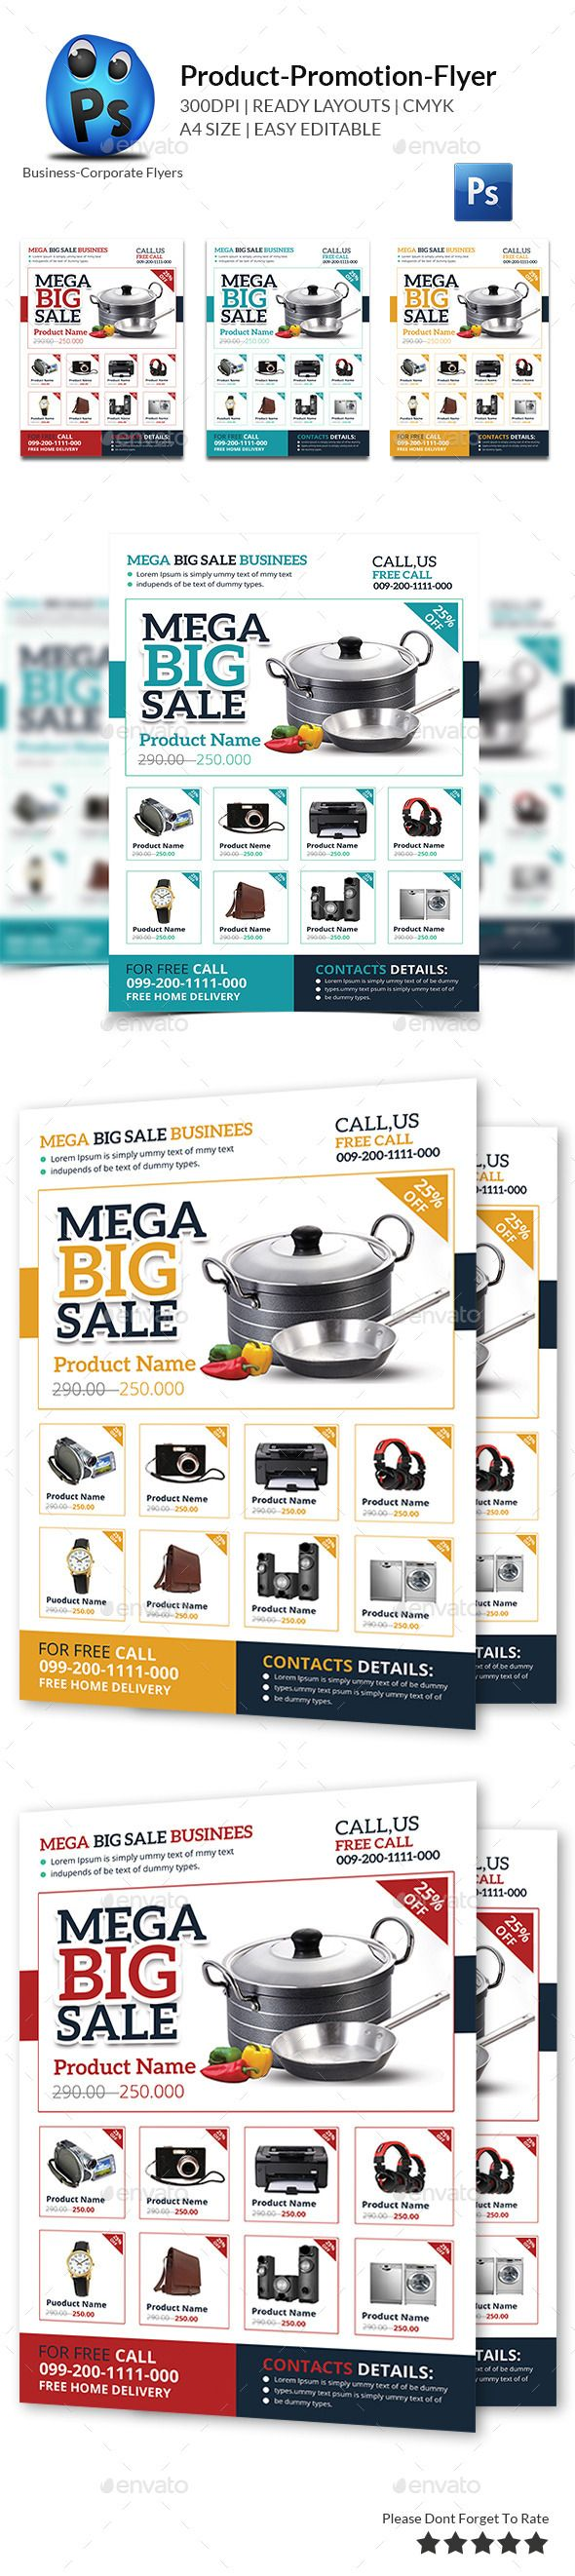 Uncategorized Promotional Code Boots Kitchen Appliances best 25 discount appliances ideas on pinterest product promotion flyer print templates